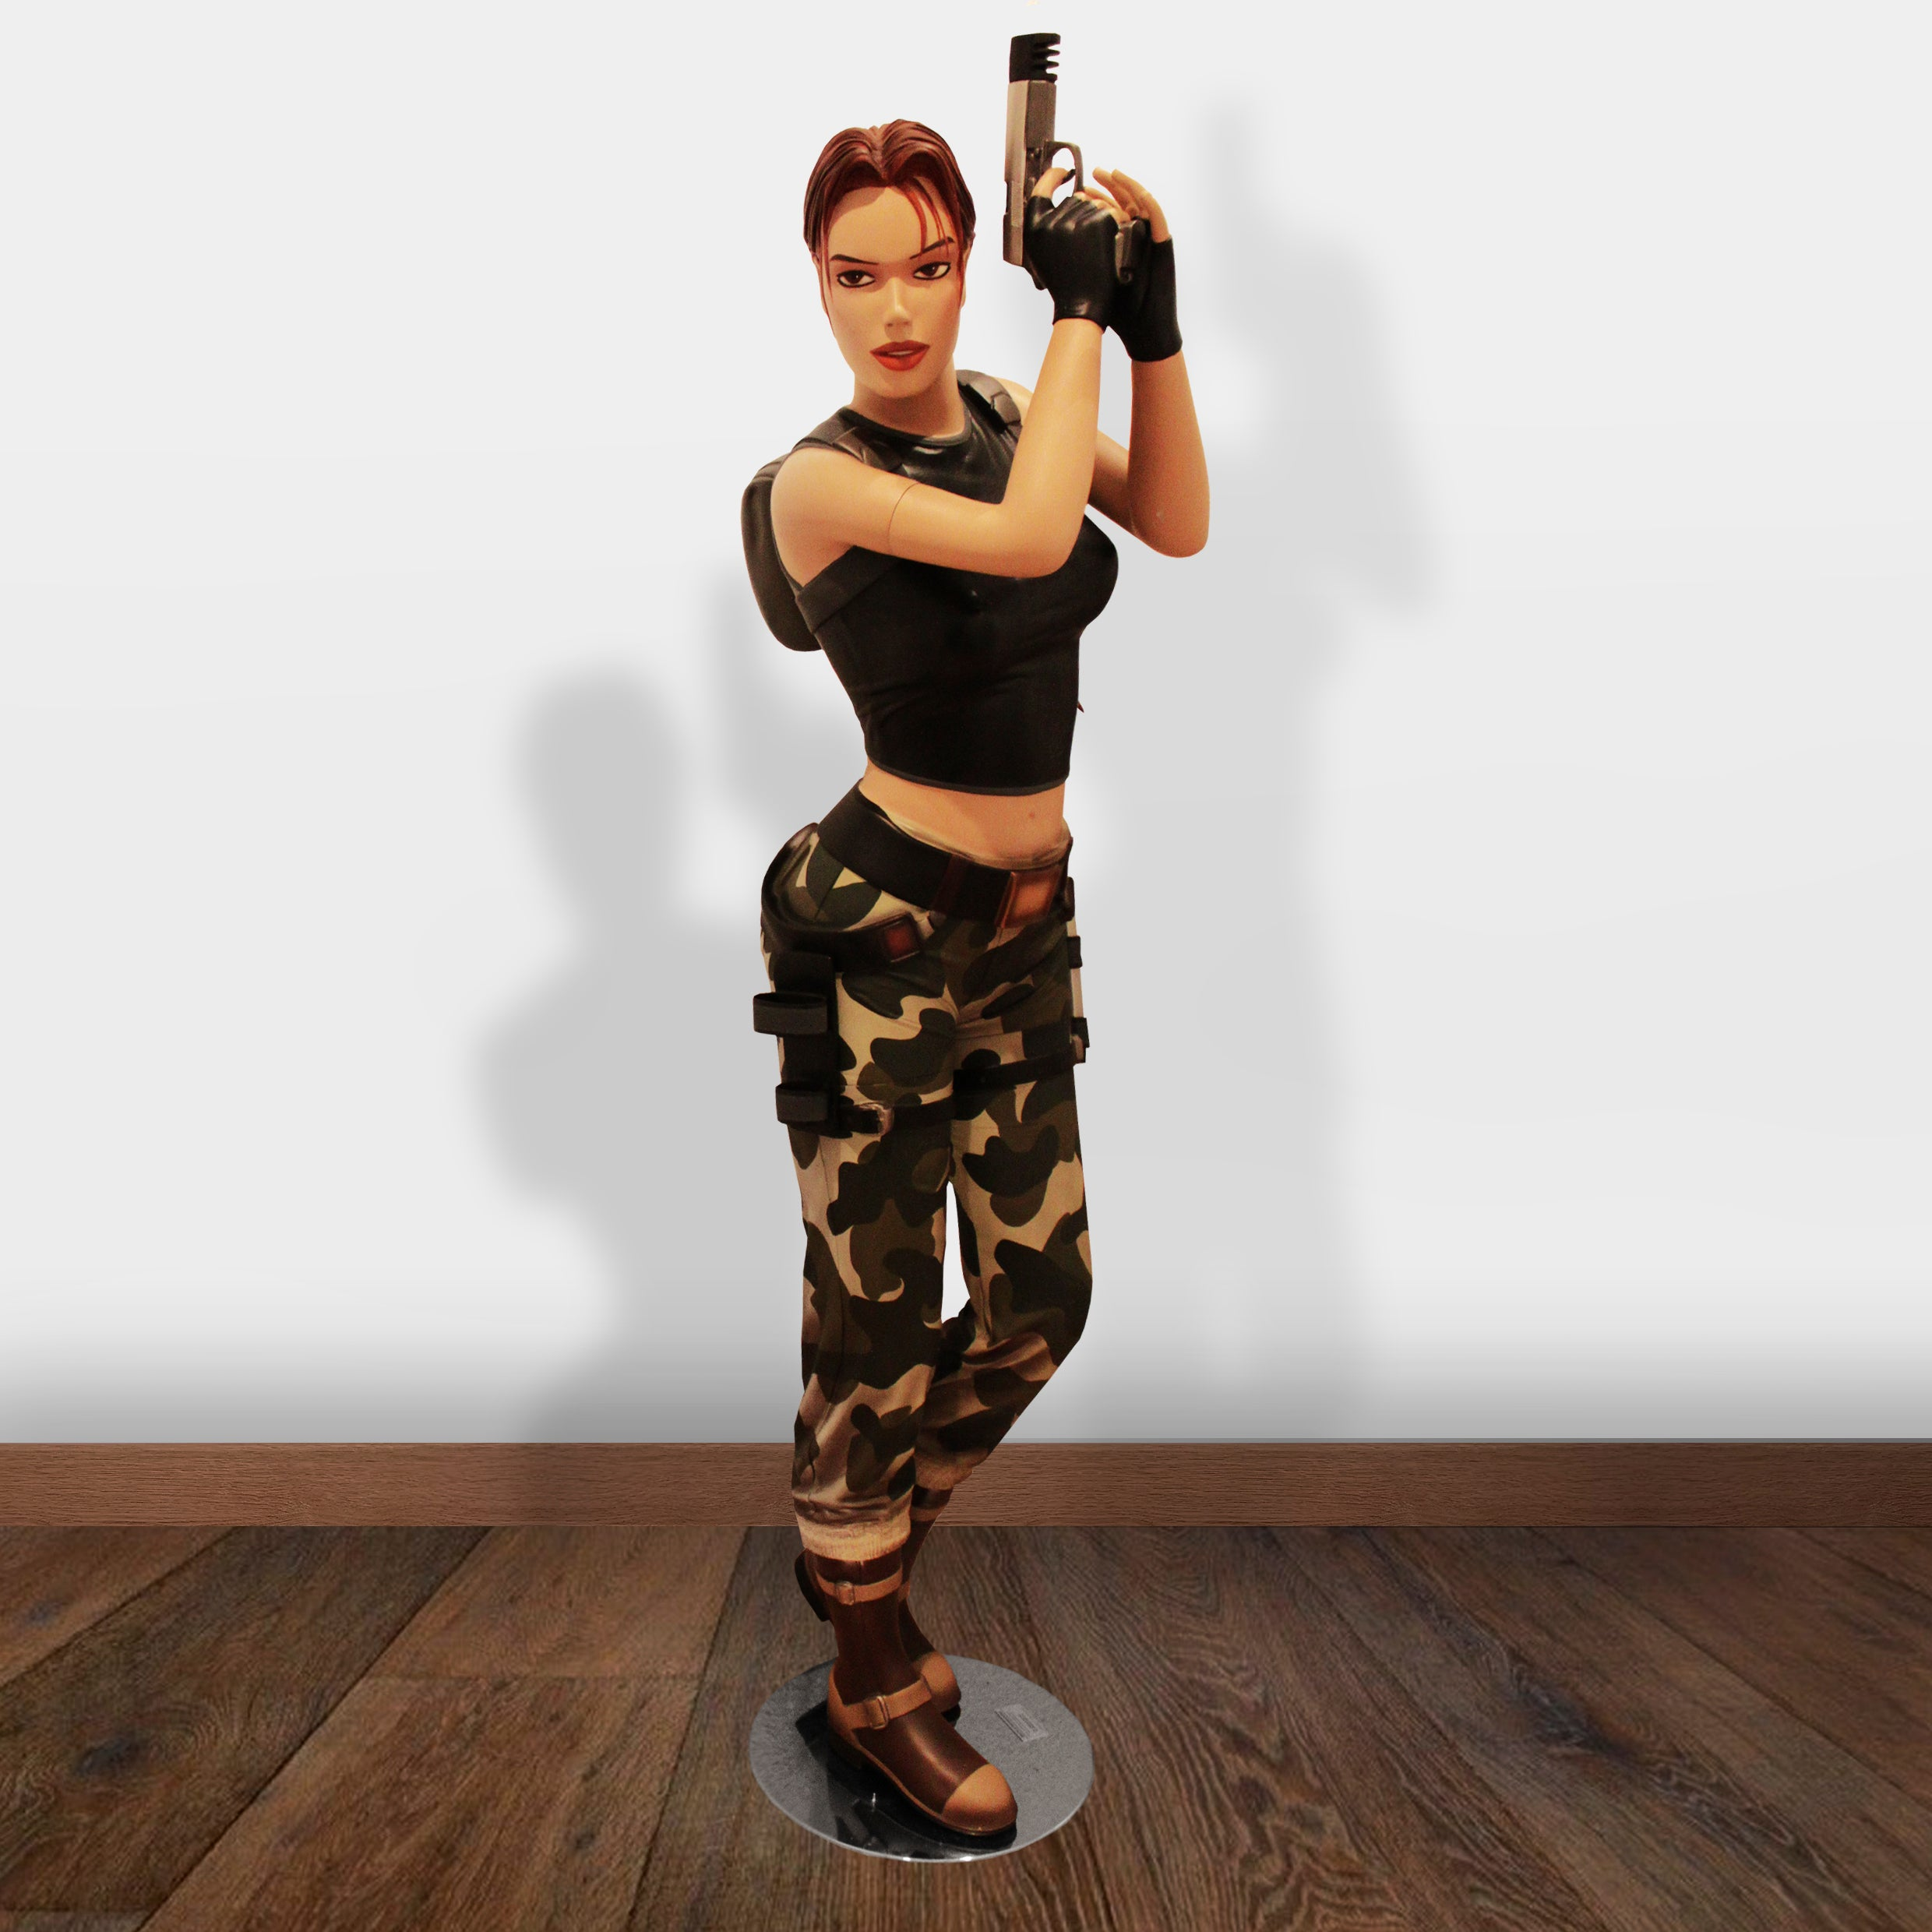 A life size statue of Lara Croft in her Angel of Darkness outfit with one pistol raised in her hands